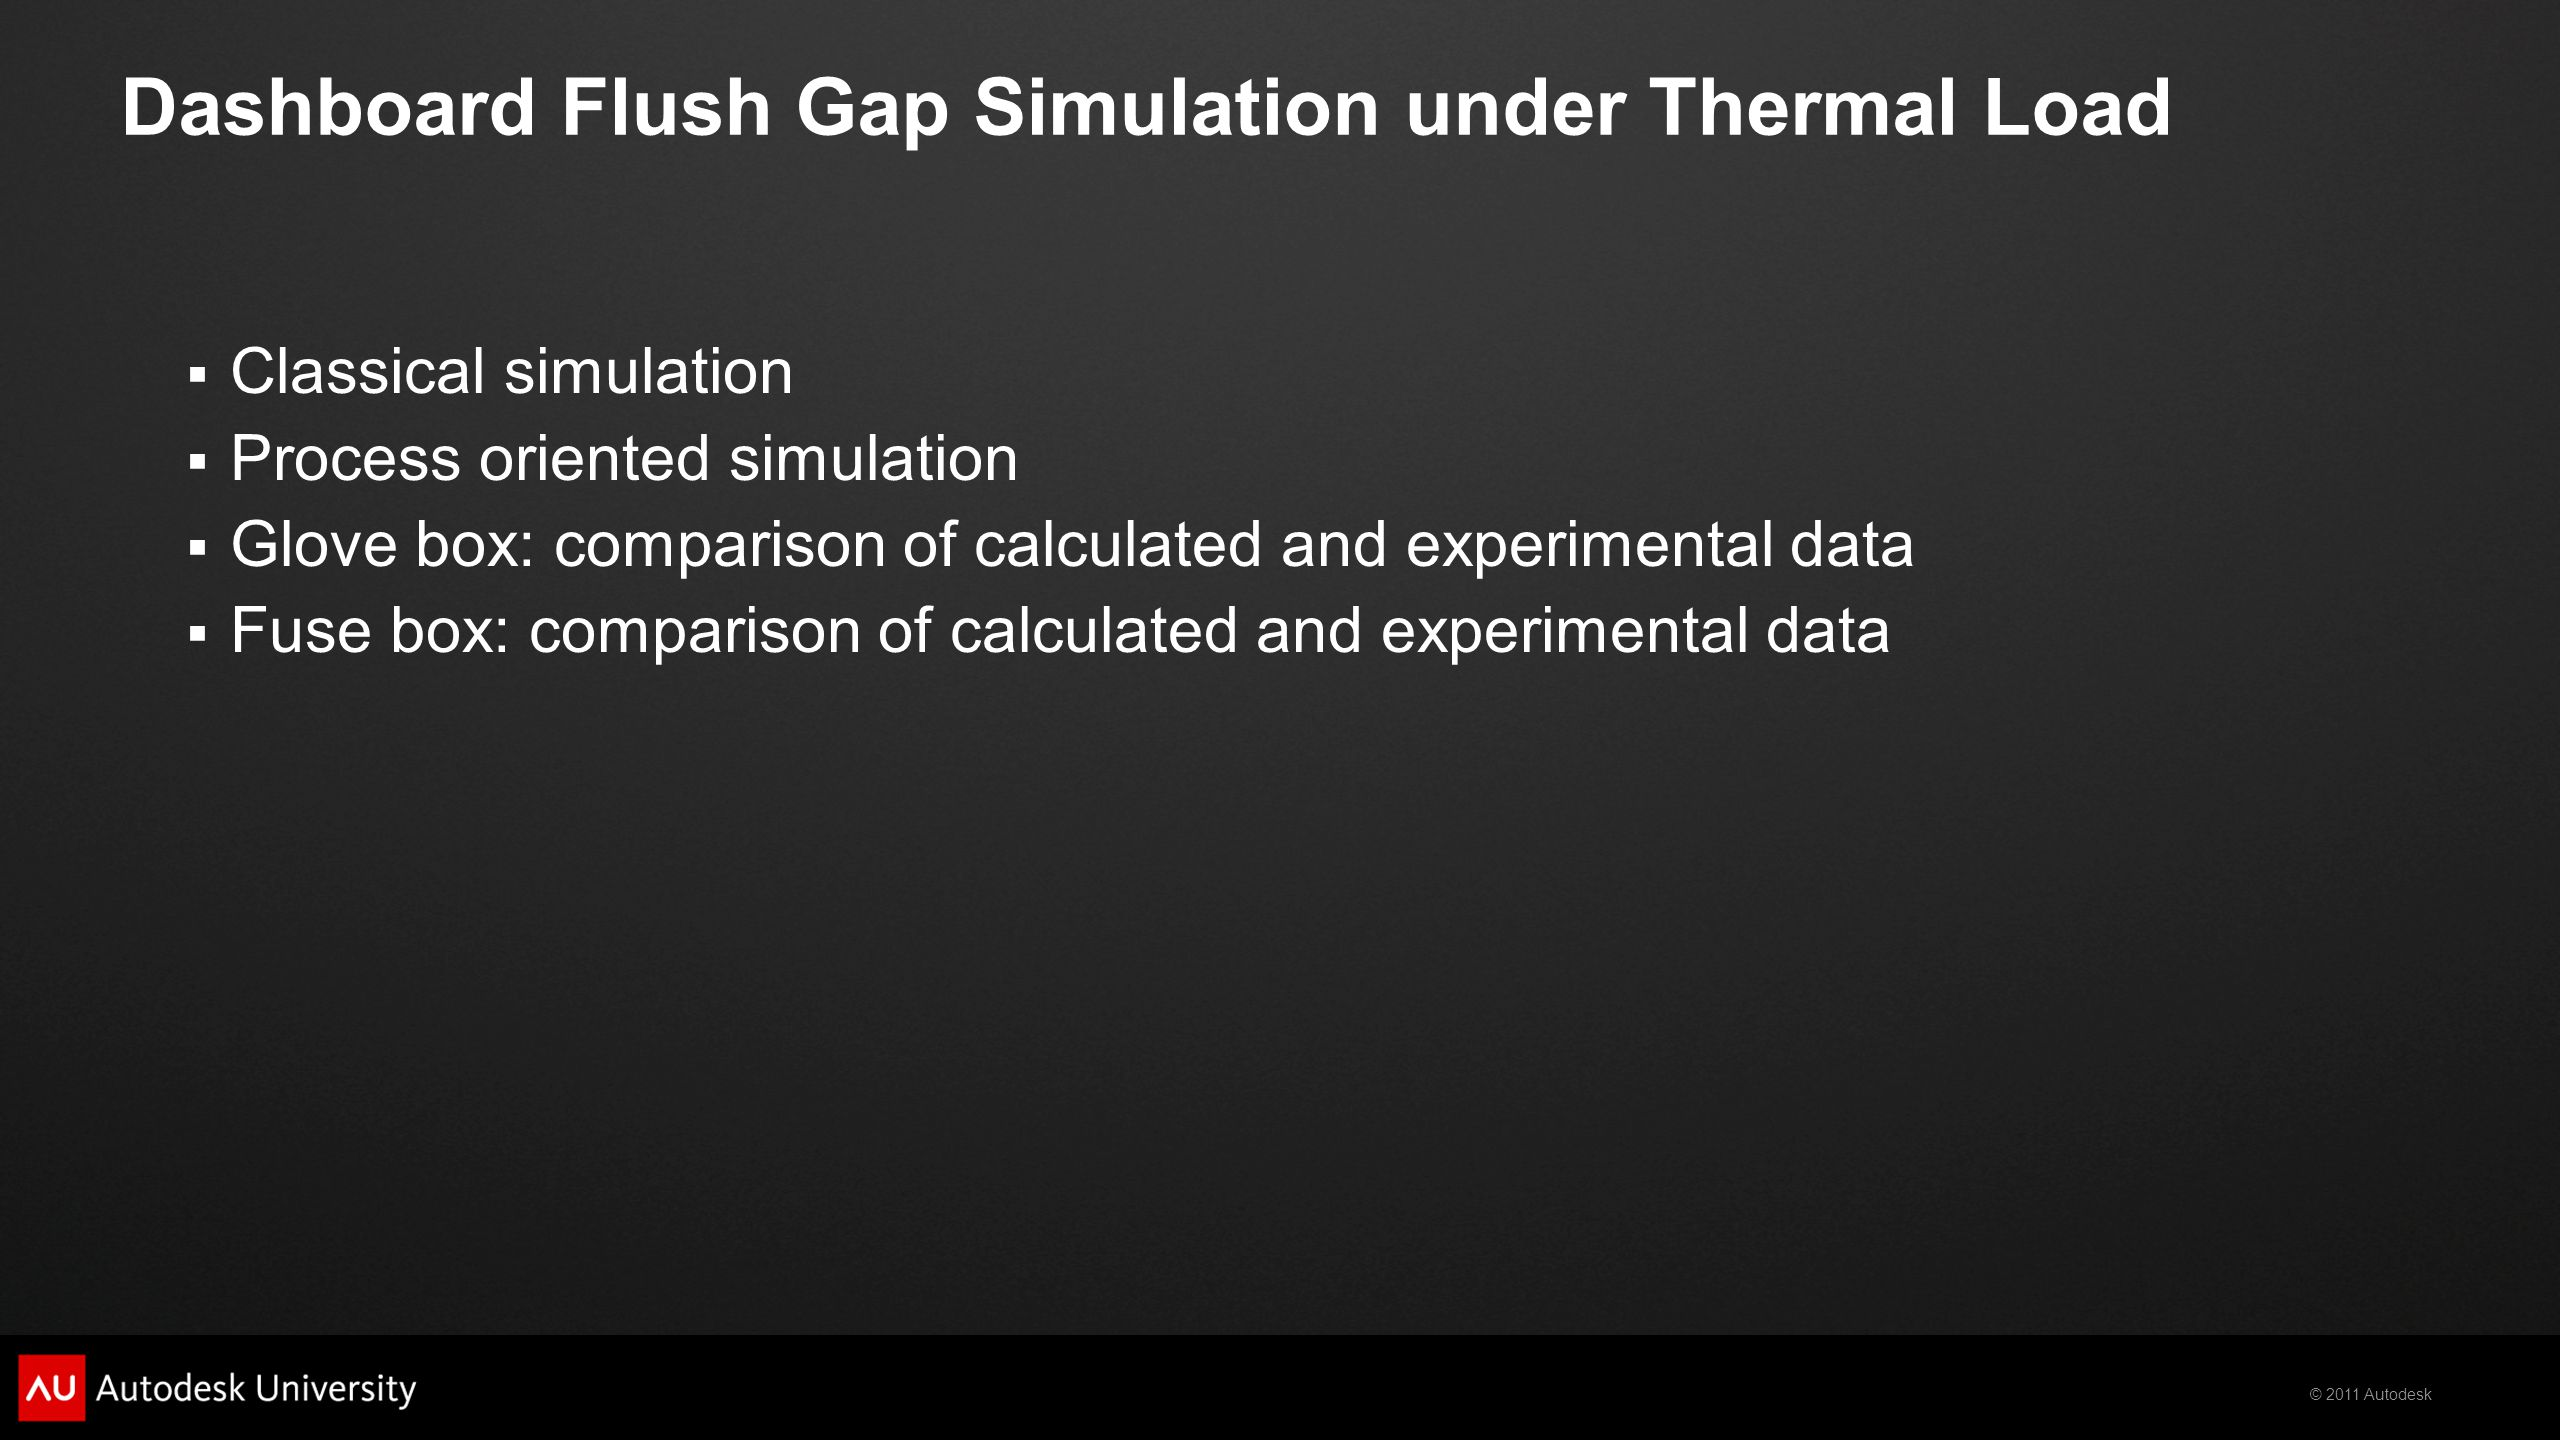 © 2011 Autodesk  Classical simulation  Process oriented simulation  Glove box: comparison of calculated and experimental data  Fuse box: comparison of calculated and experimental data Dashboard Flush Gap Simulation under Thermal Load